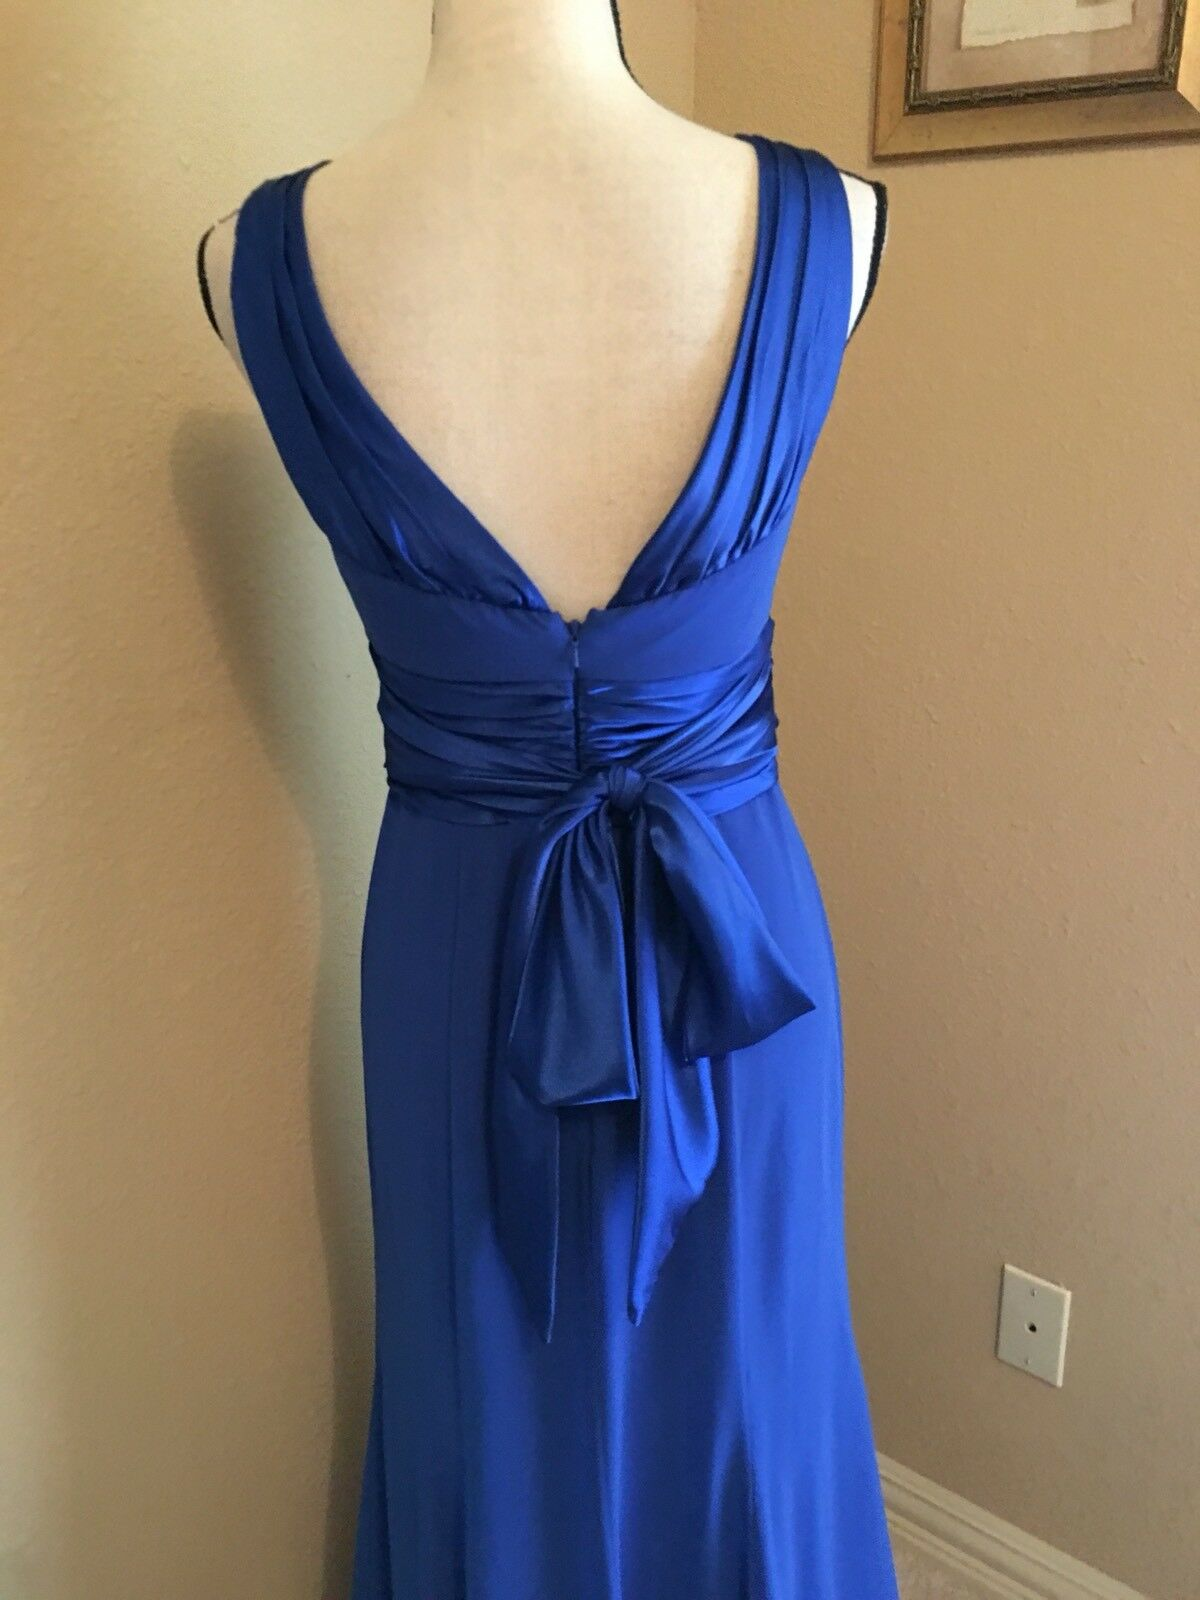 David's Bridal Size 4 bluee Bridesmaid   Formal Dress Dress Dress - 8e667e